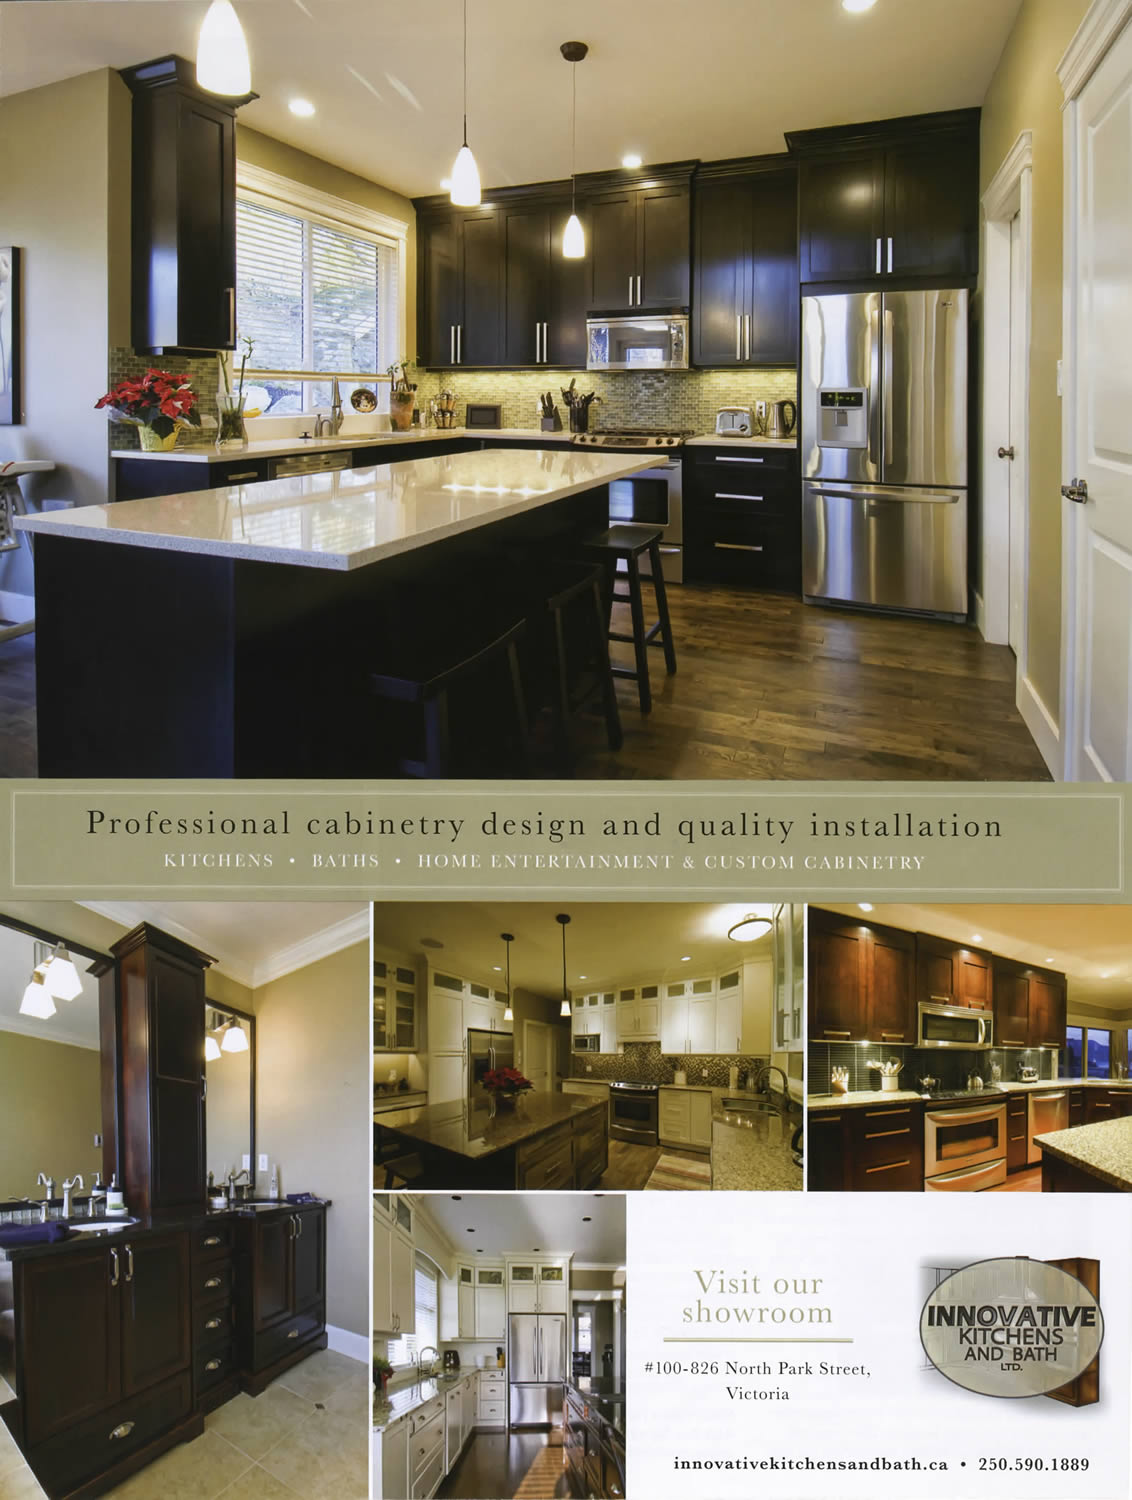 Innovative Kitchens and Bath Ltd.